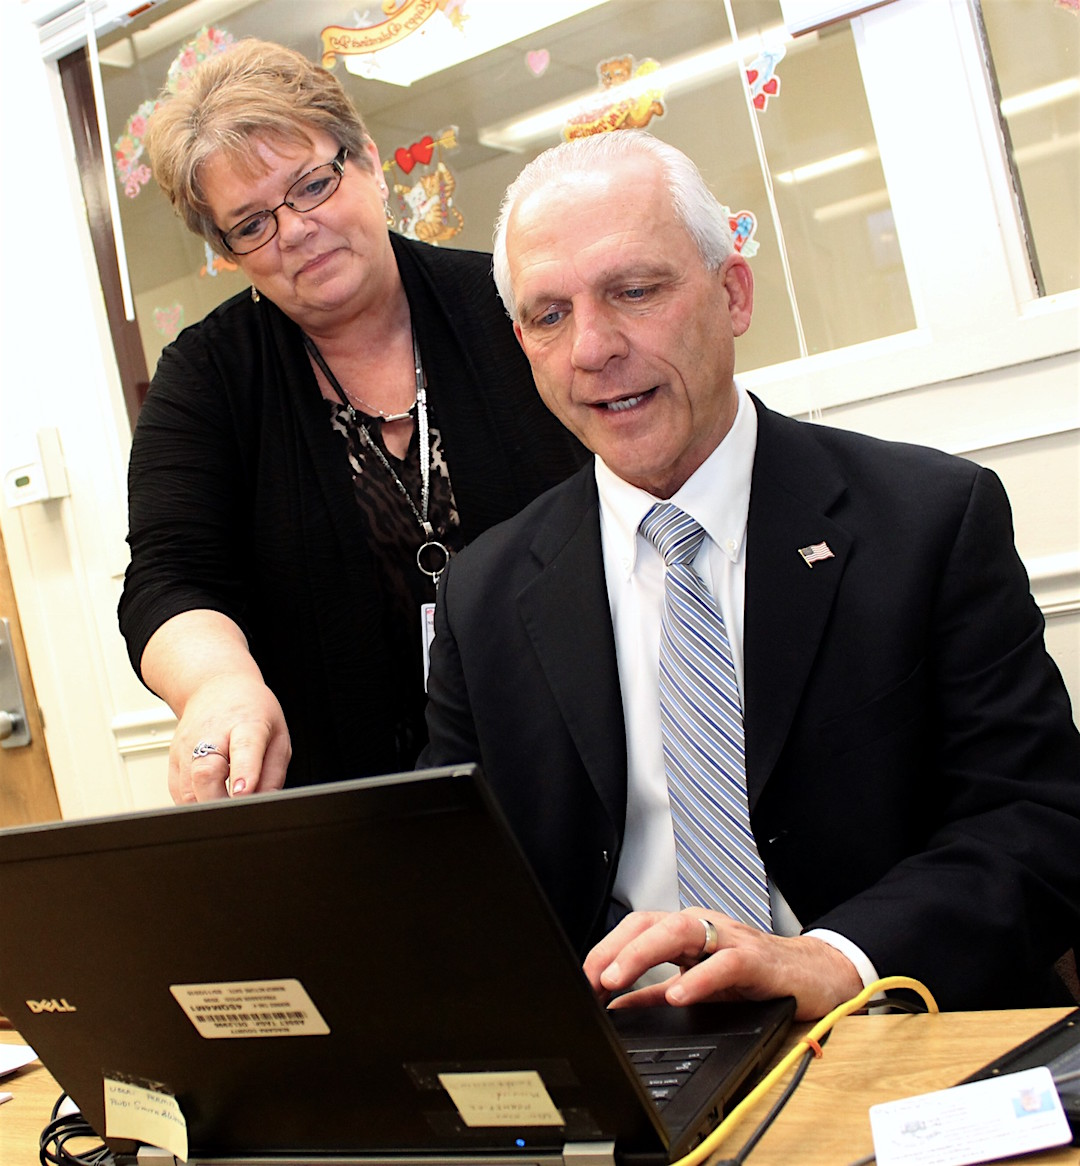 Niagara County Clerk Joe Jastrzemski uses a public computer terminal to log onto the New York State Police pistol permit recertification website while in the Niagara County pistol permit office. Pistol Permit Clerk Janice Rider looks on.